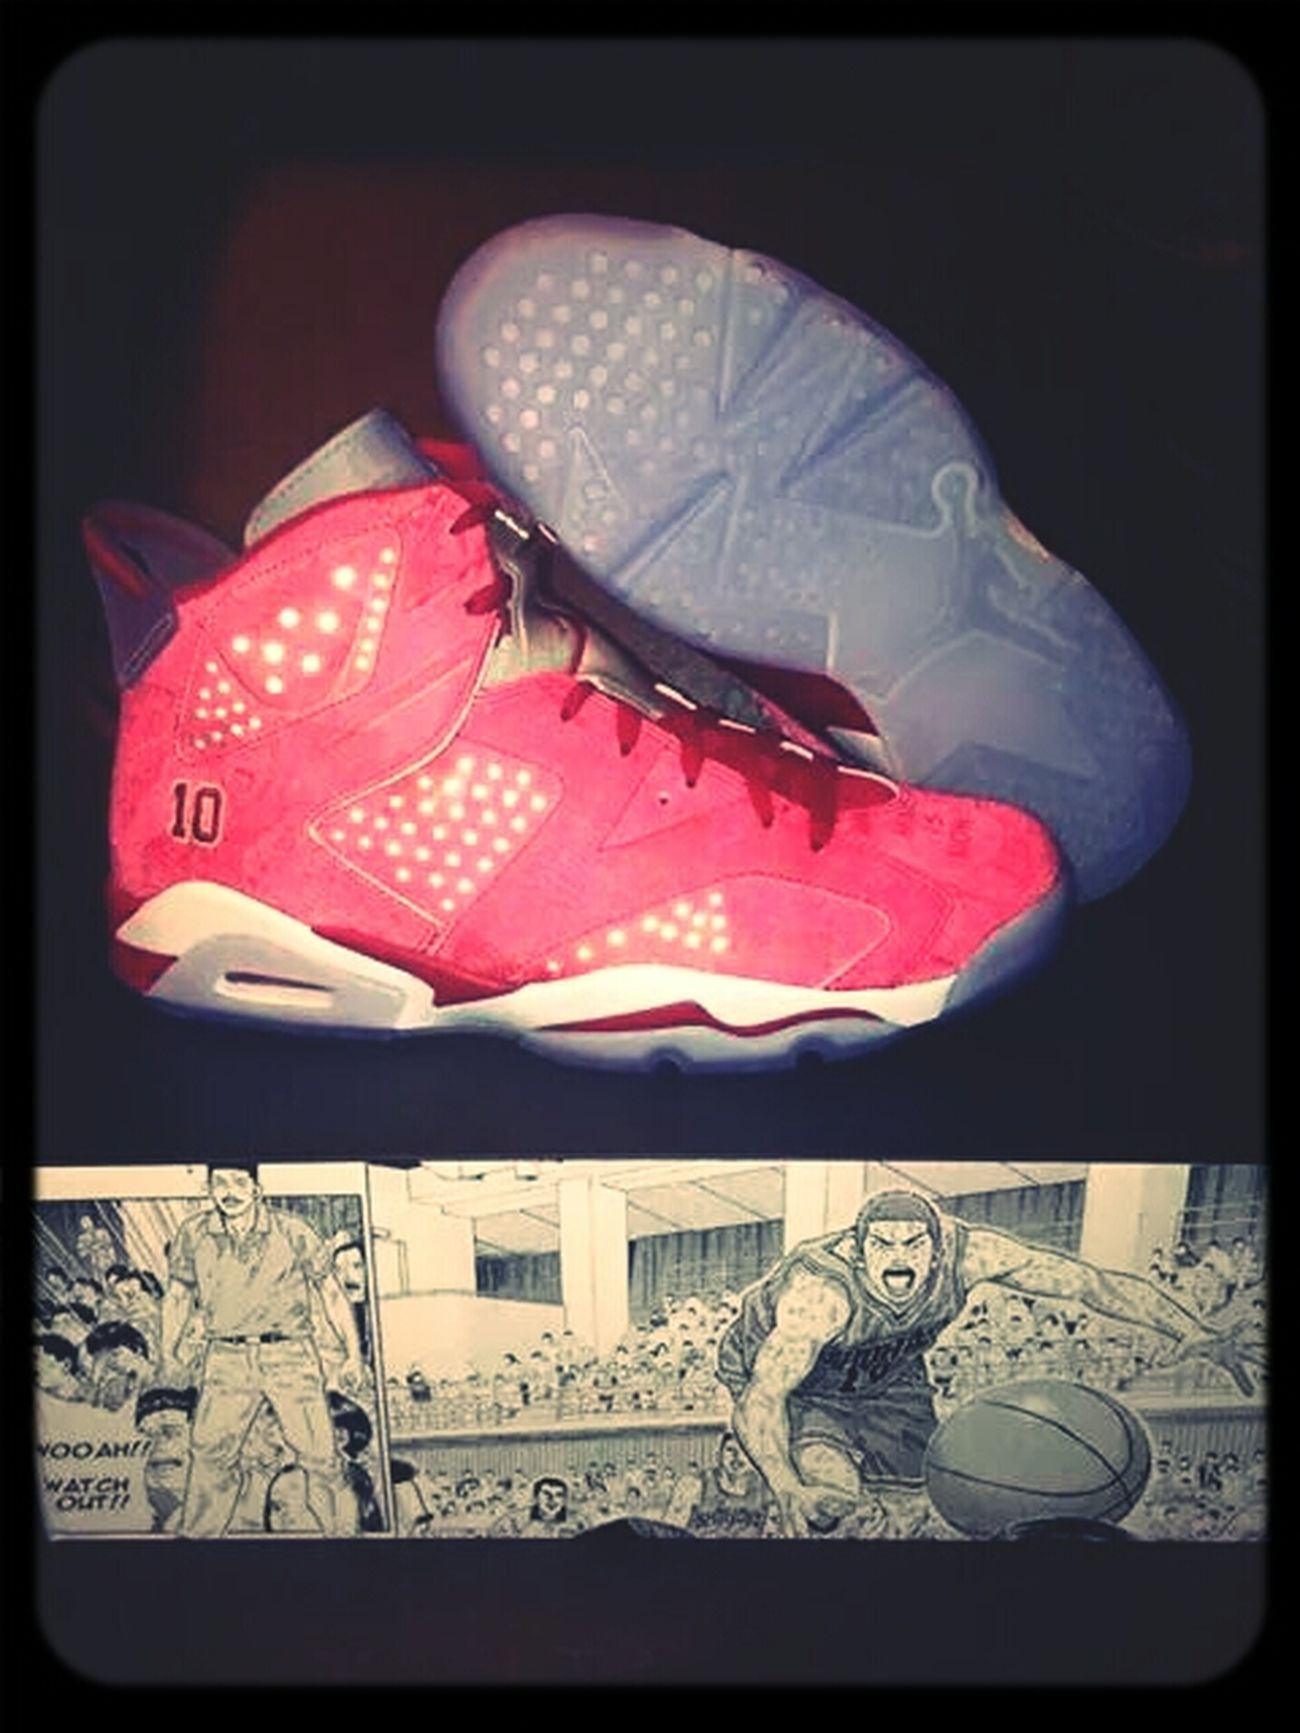 This Baby Just Came Out! Jordans On My Feet  Sakuragi cop! Jordans